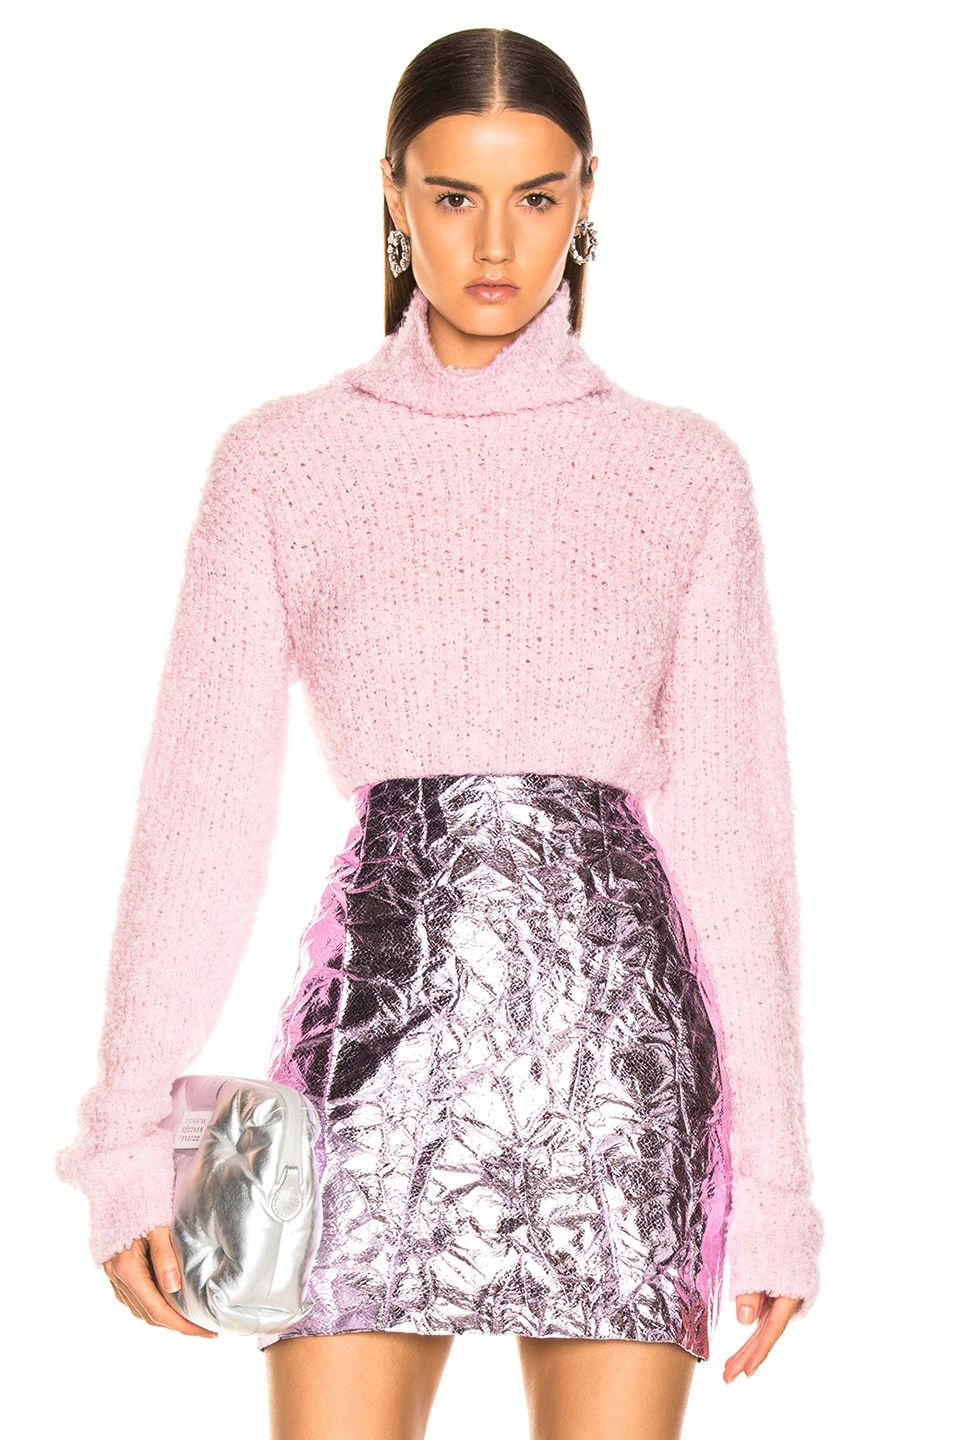 Sies Marjan Sukie Boucle Turtleneck Soft Pink outlet